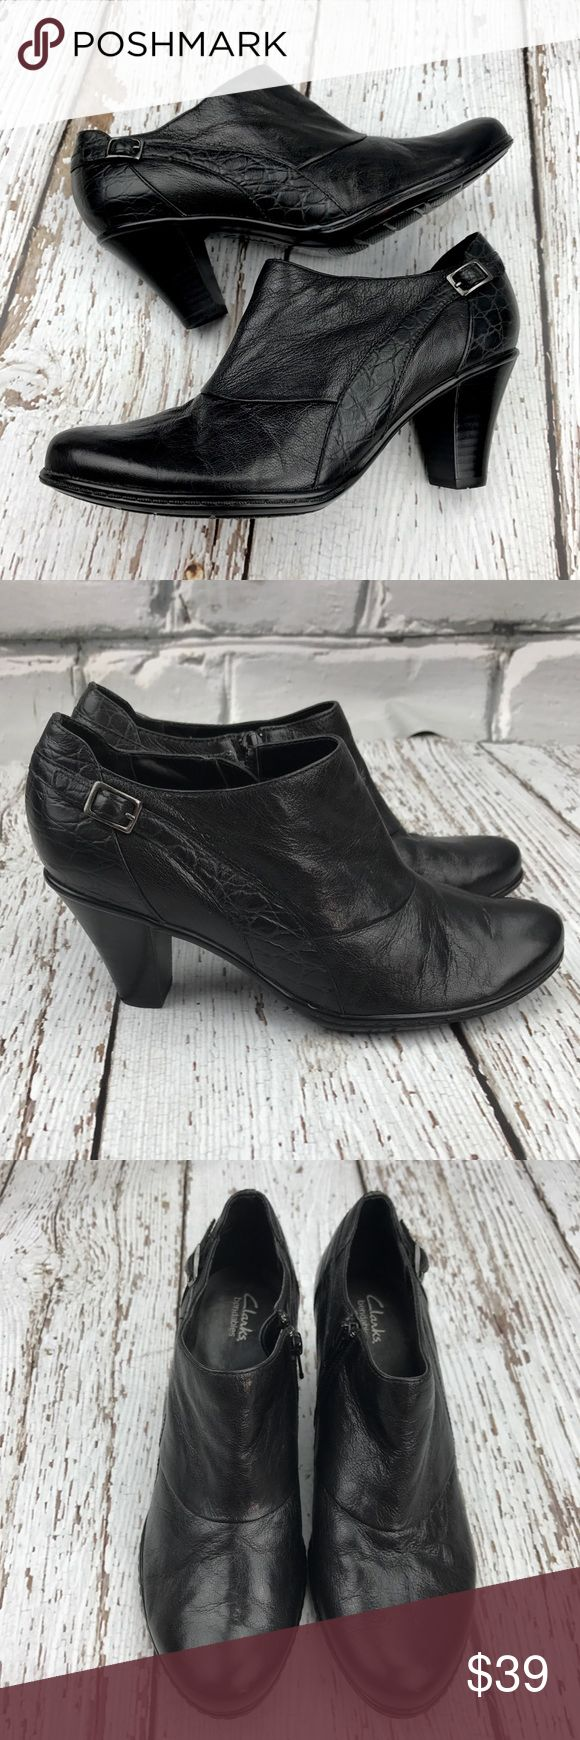 💕SALE💕Clark's Black Bendables Leather Ankle Boot Fabulous 💕SALE💕Clark's Black Leather Bendables Ankle Boots never worn. Amazing Clarks Comfort for a fraction of the price Clarks Shoes Ankle Boots & Booties